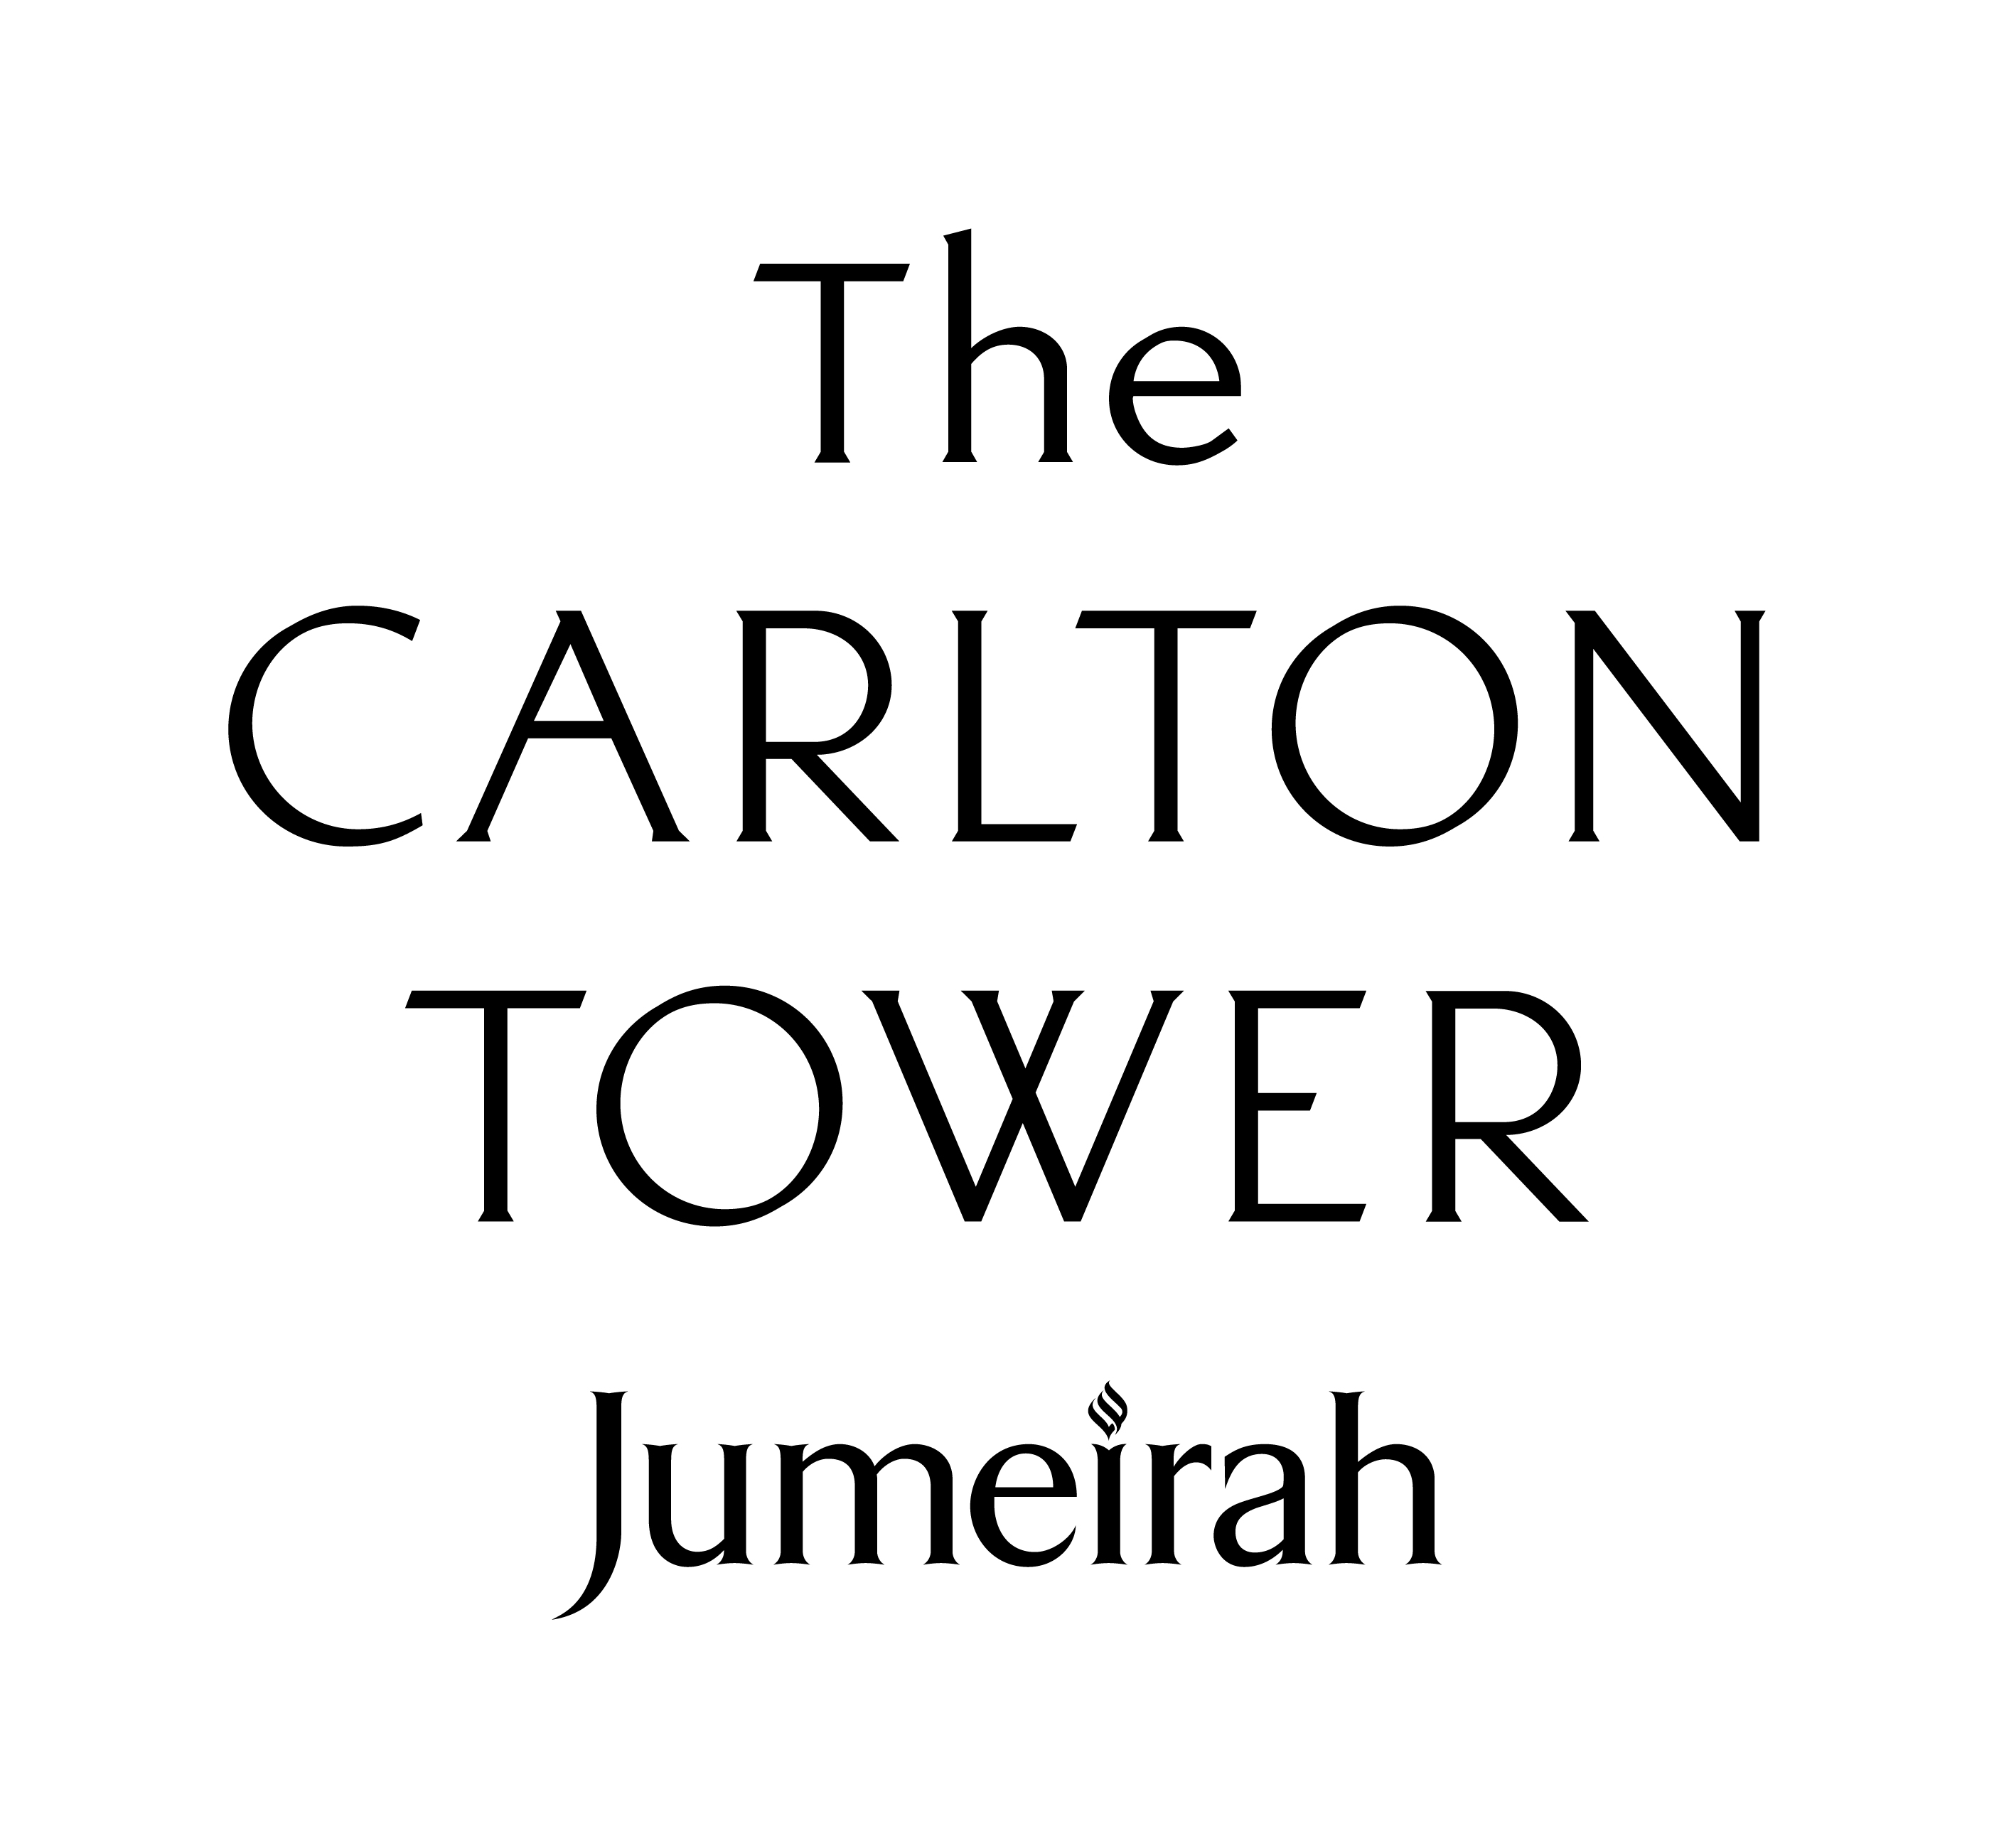 The Carlton Tower Jumeirah logo